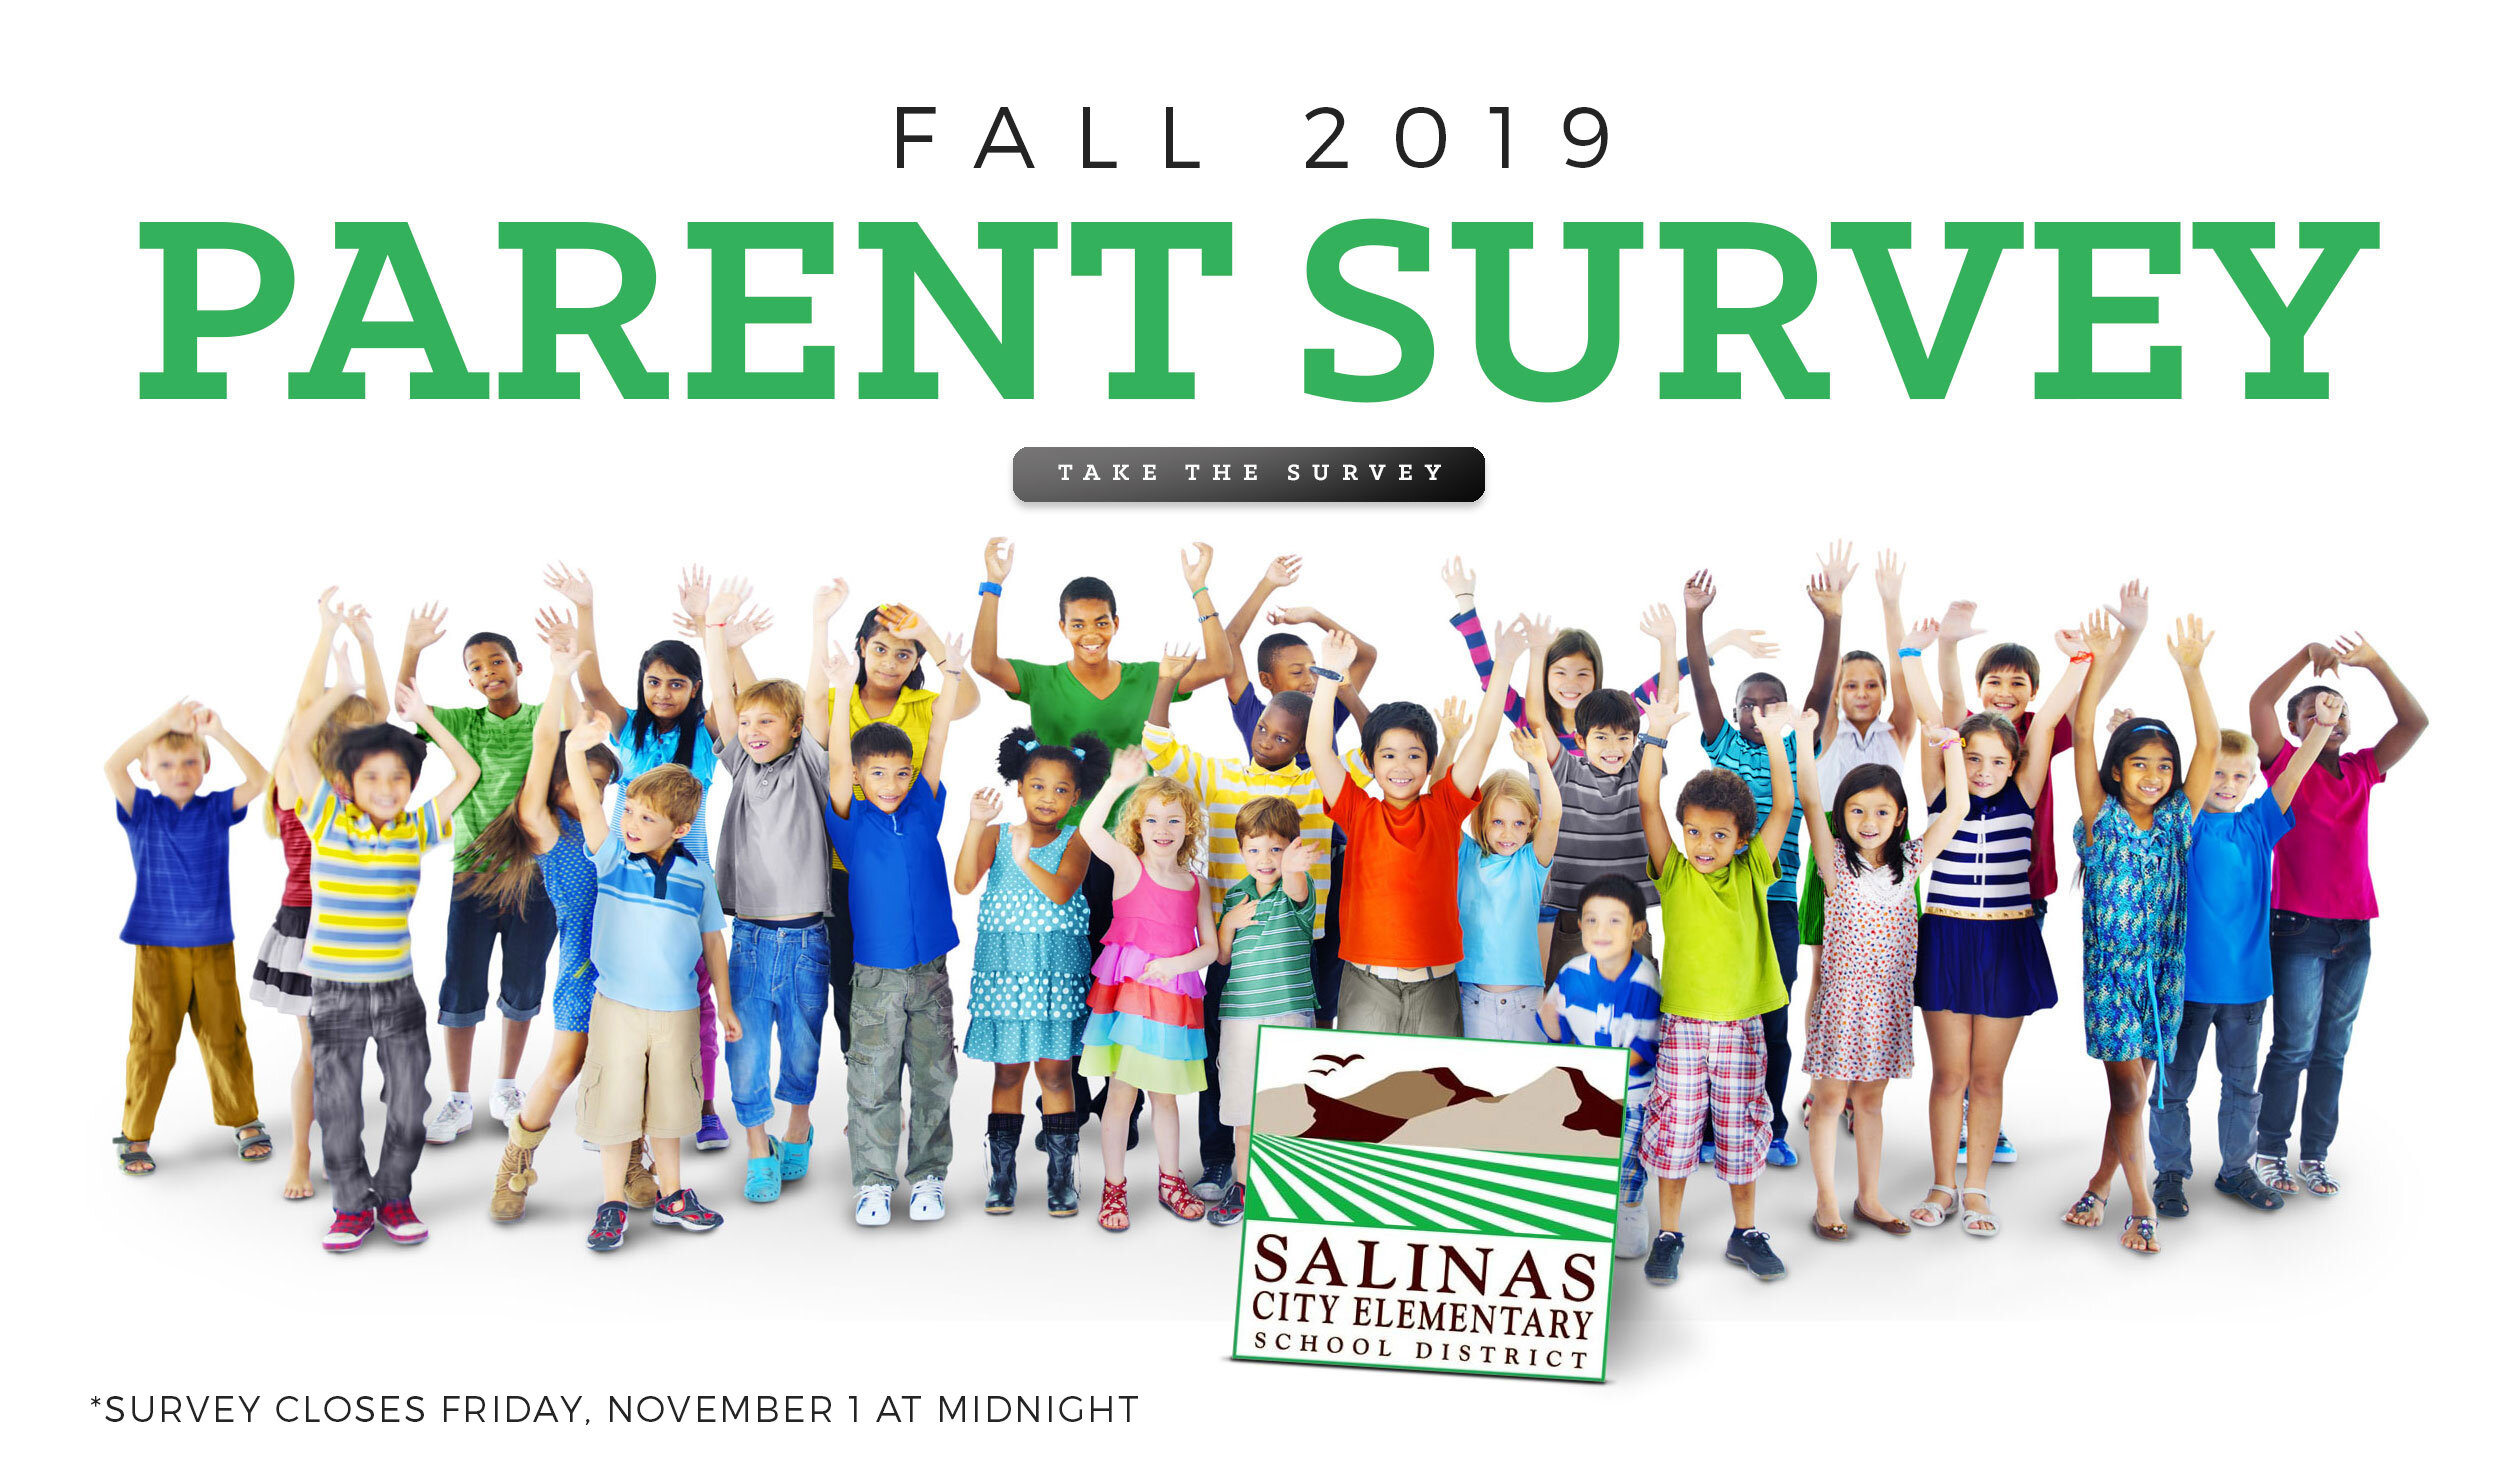 2019_parentsurvey_Header.jpg